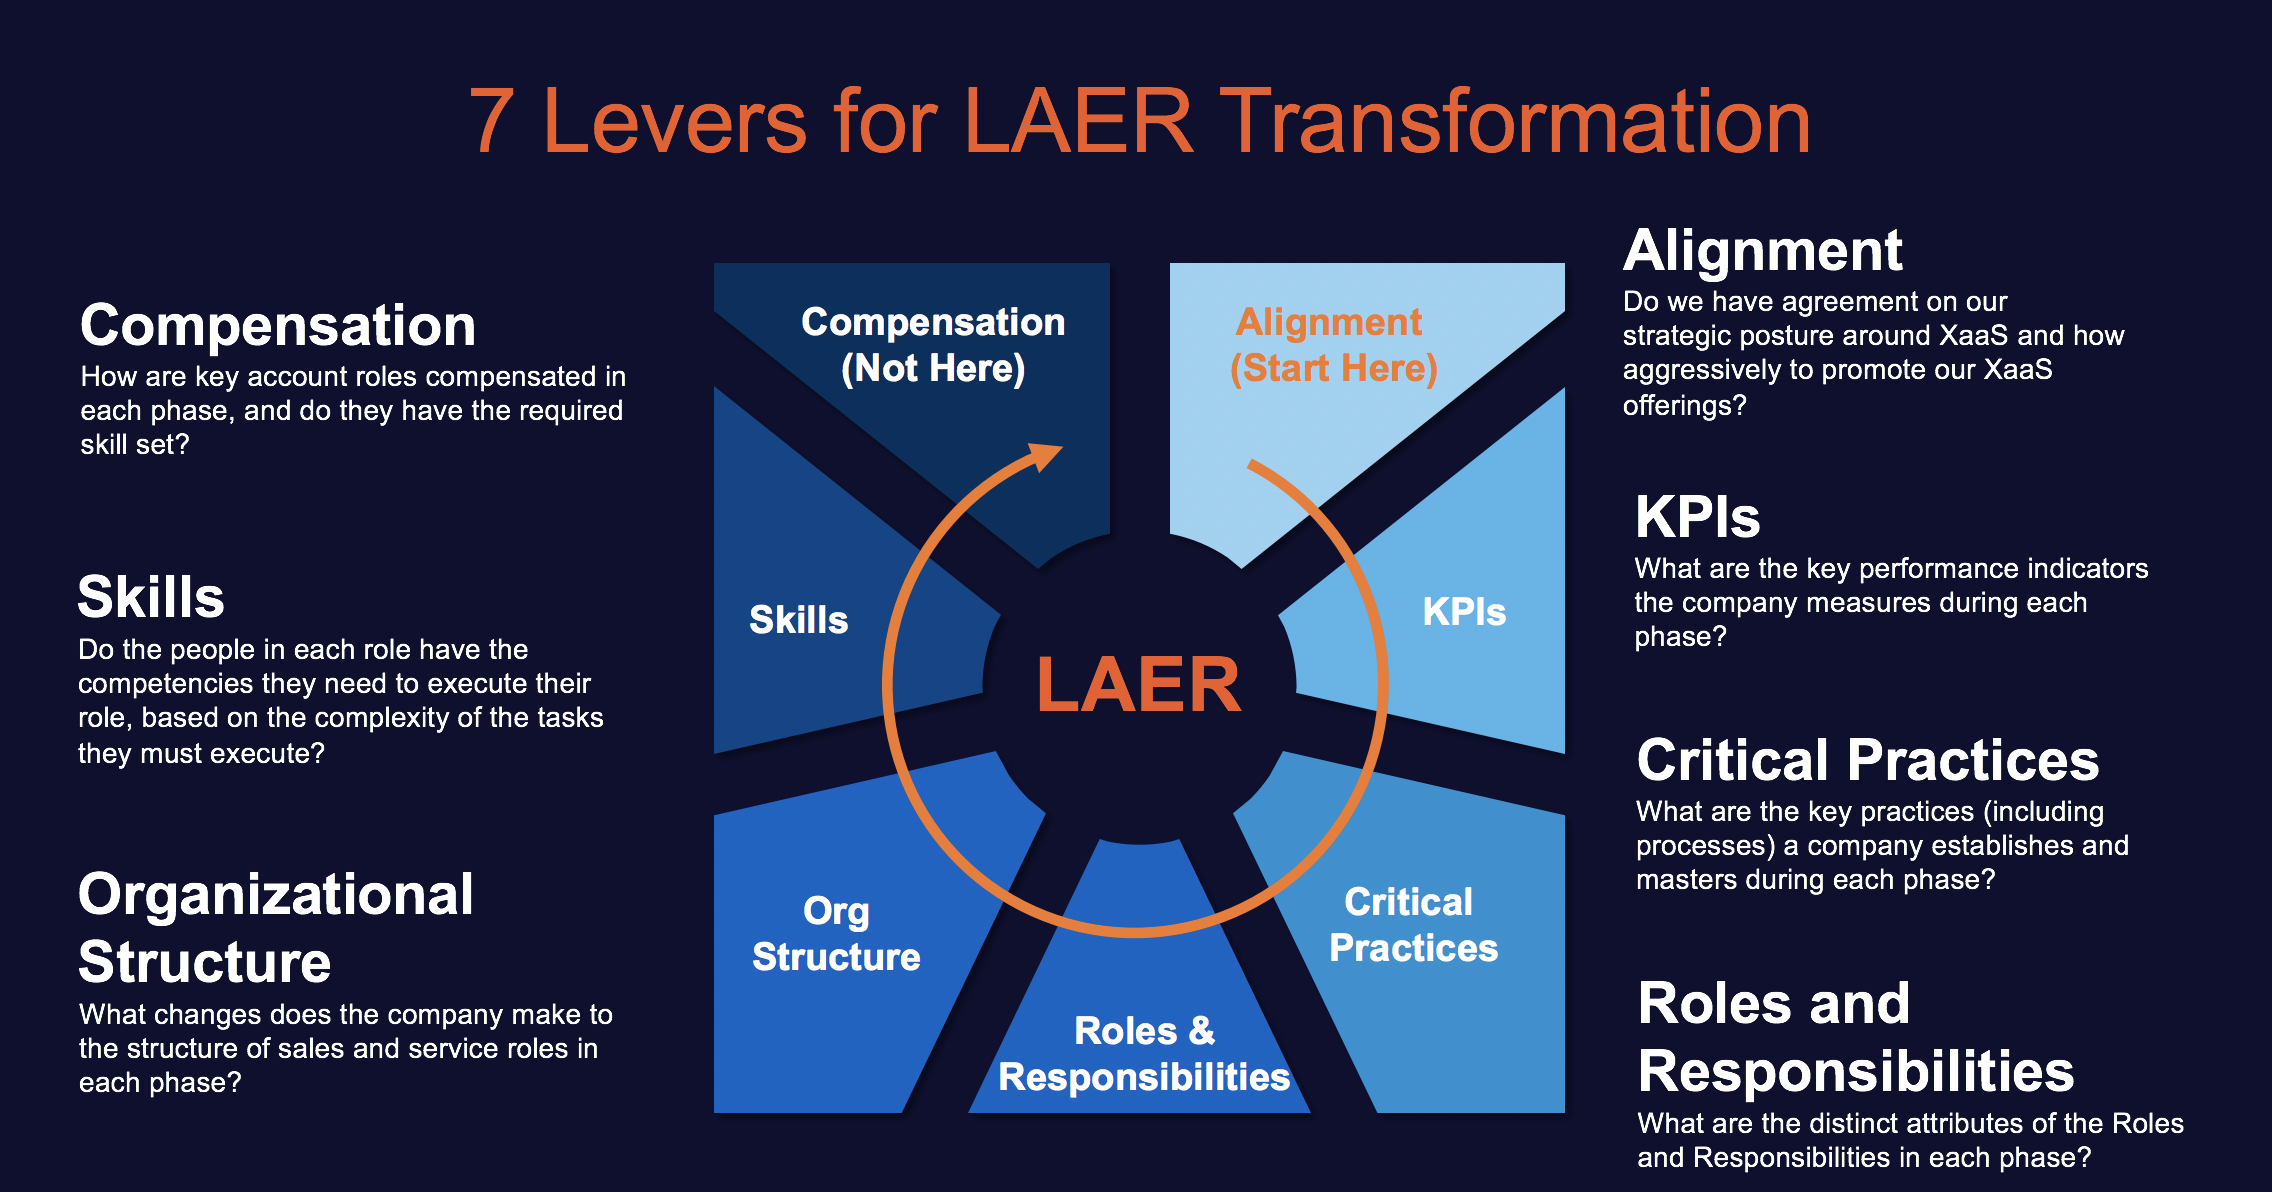 Source: 7 Levers for LAER Transformation Framework